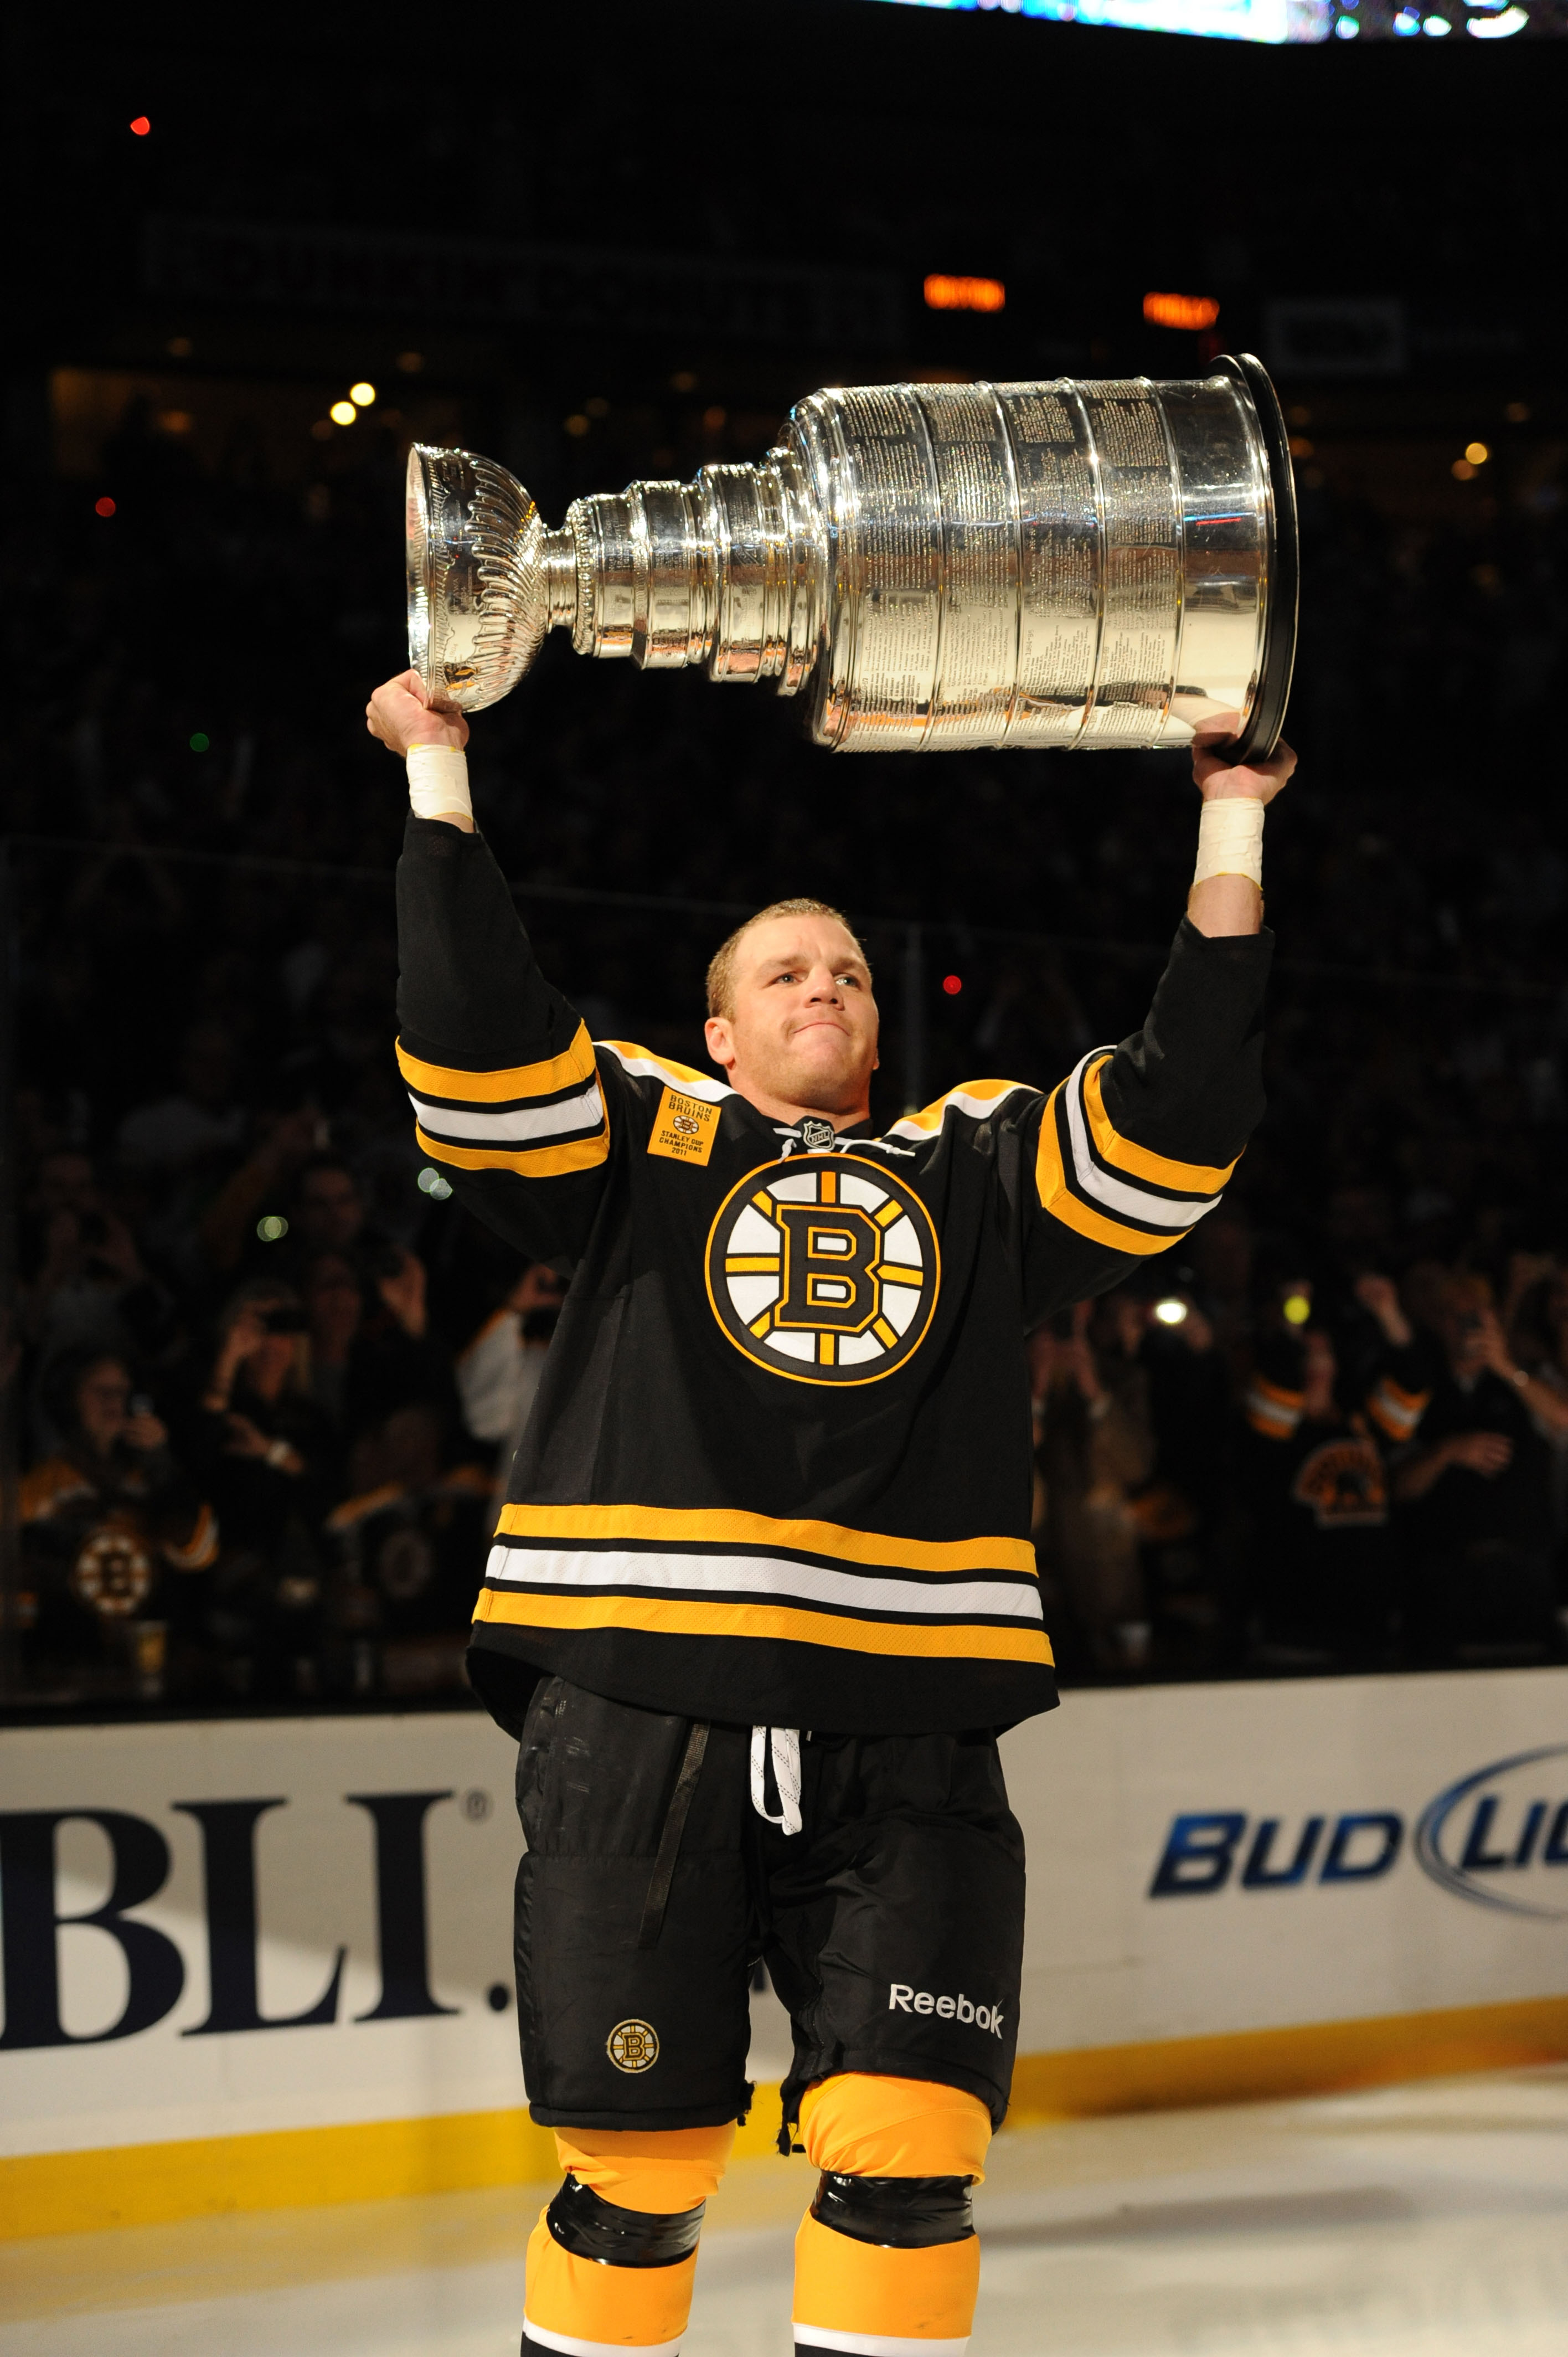 shawn thornton with the stanley cup